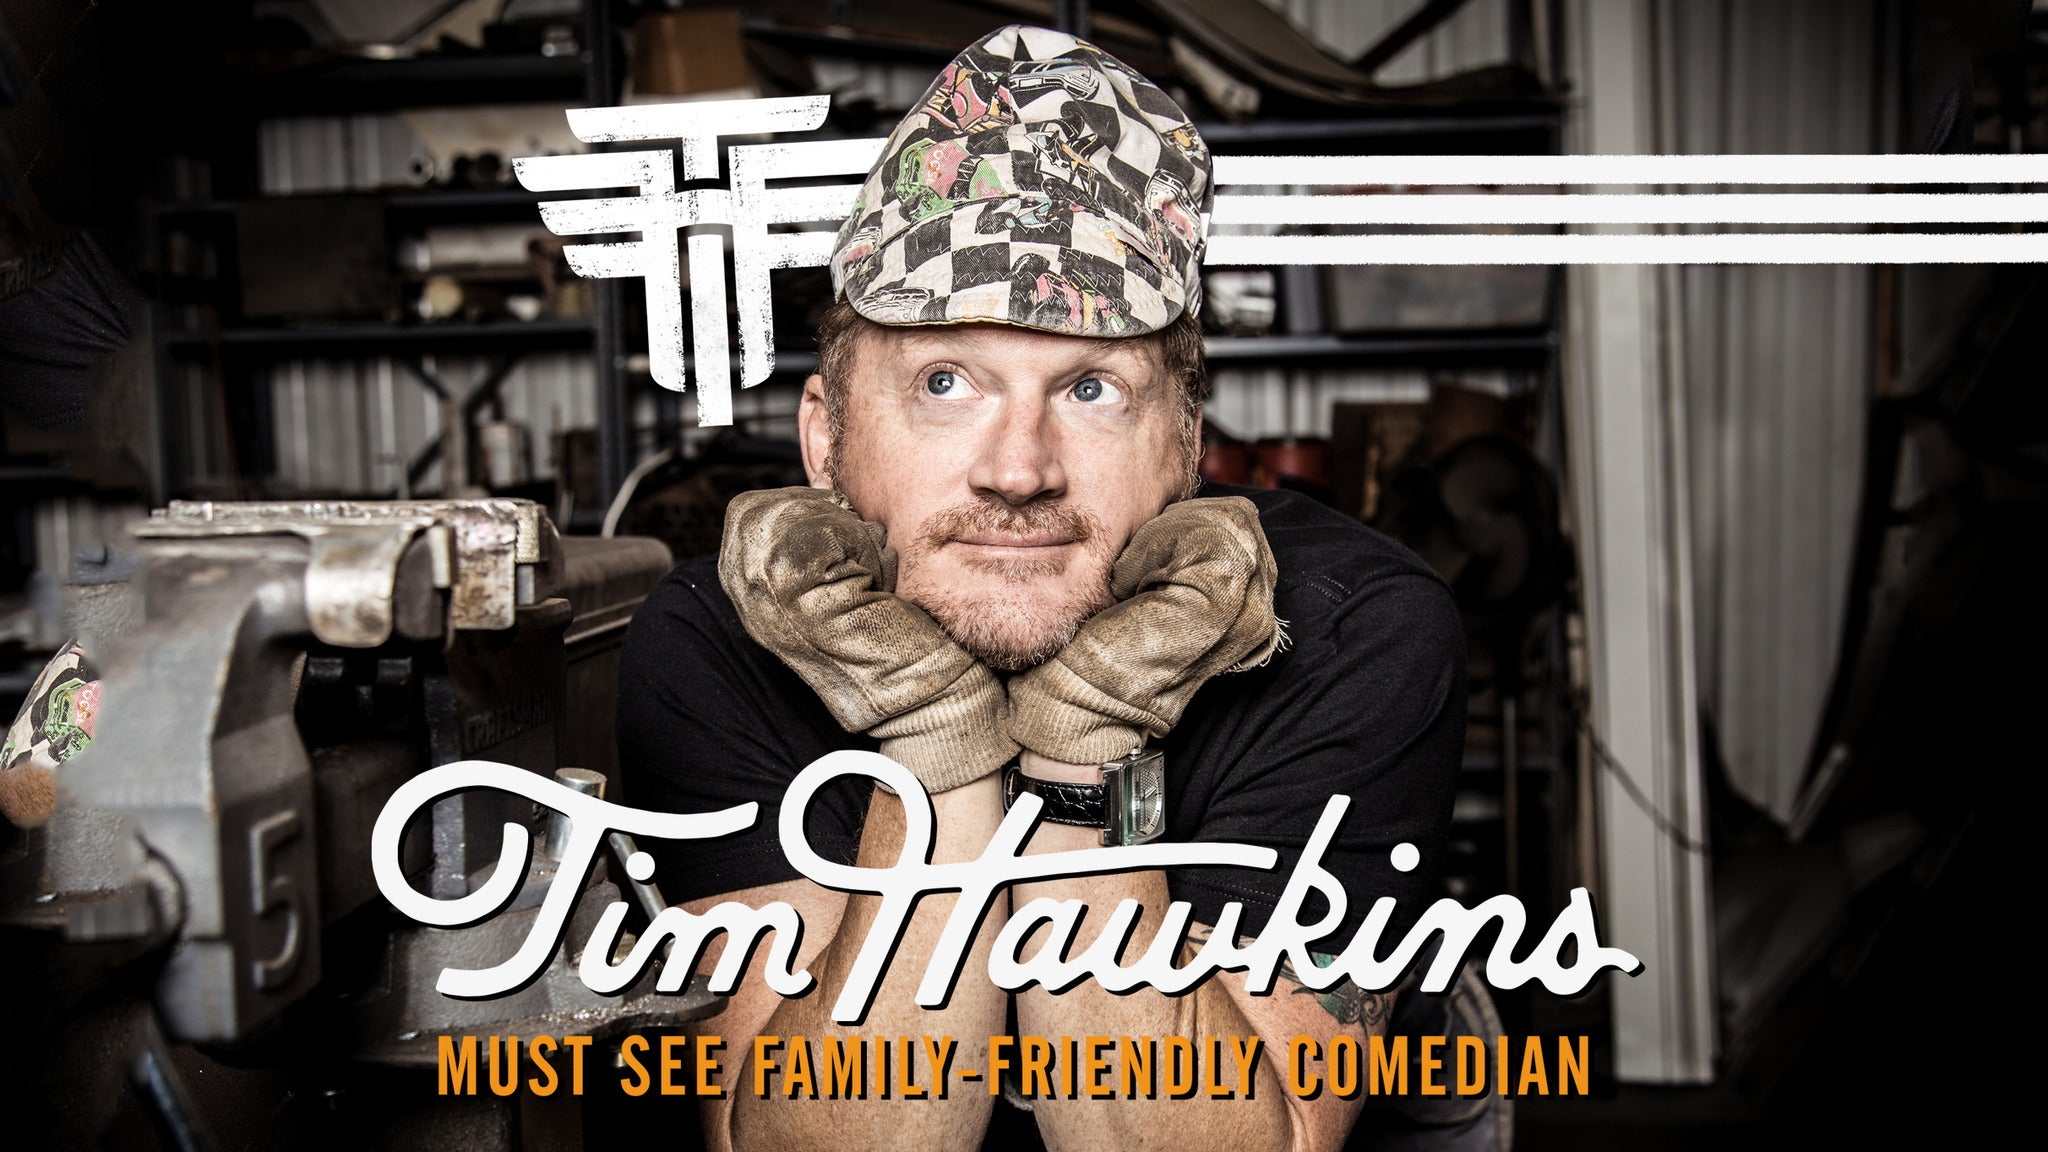 Tim Hawkins at Community Arts Center - PA